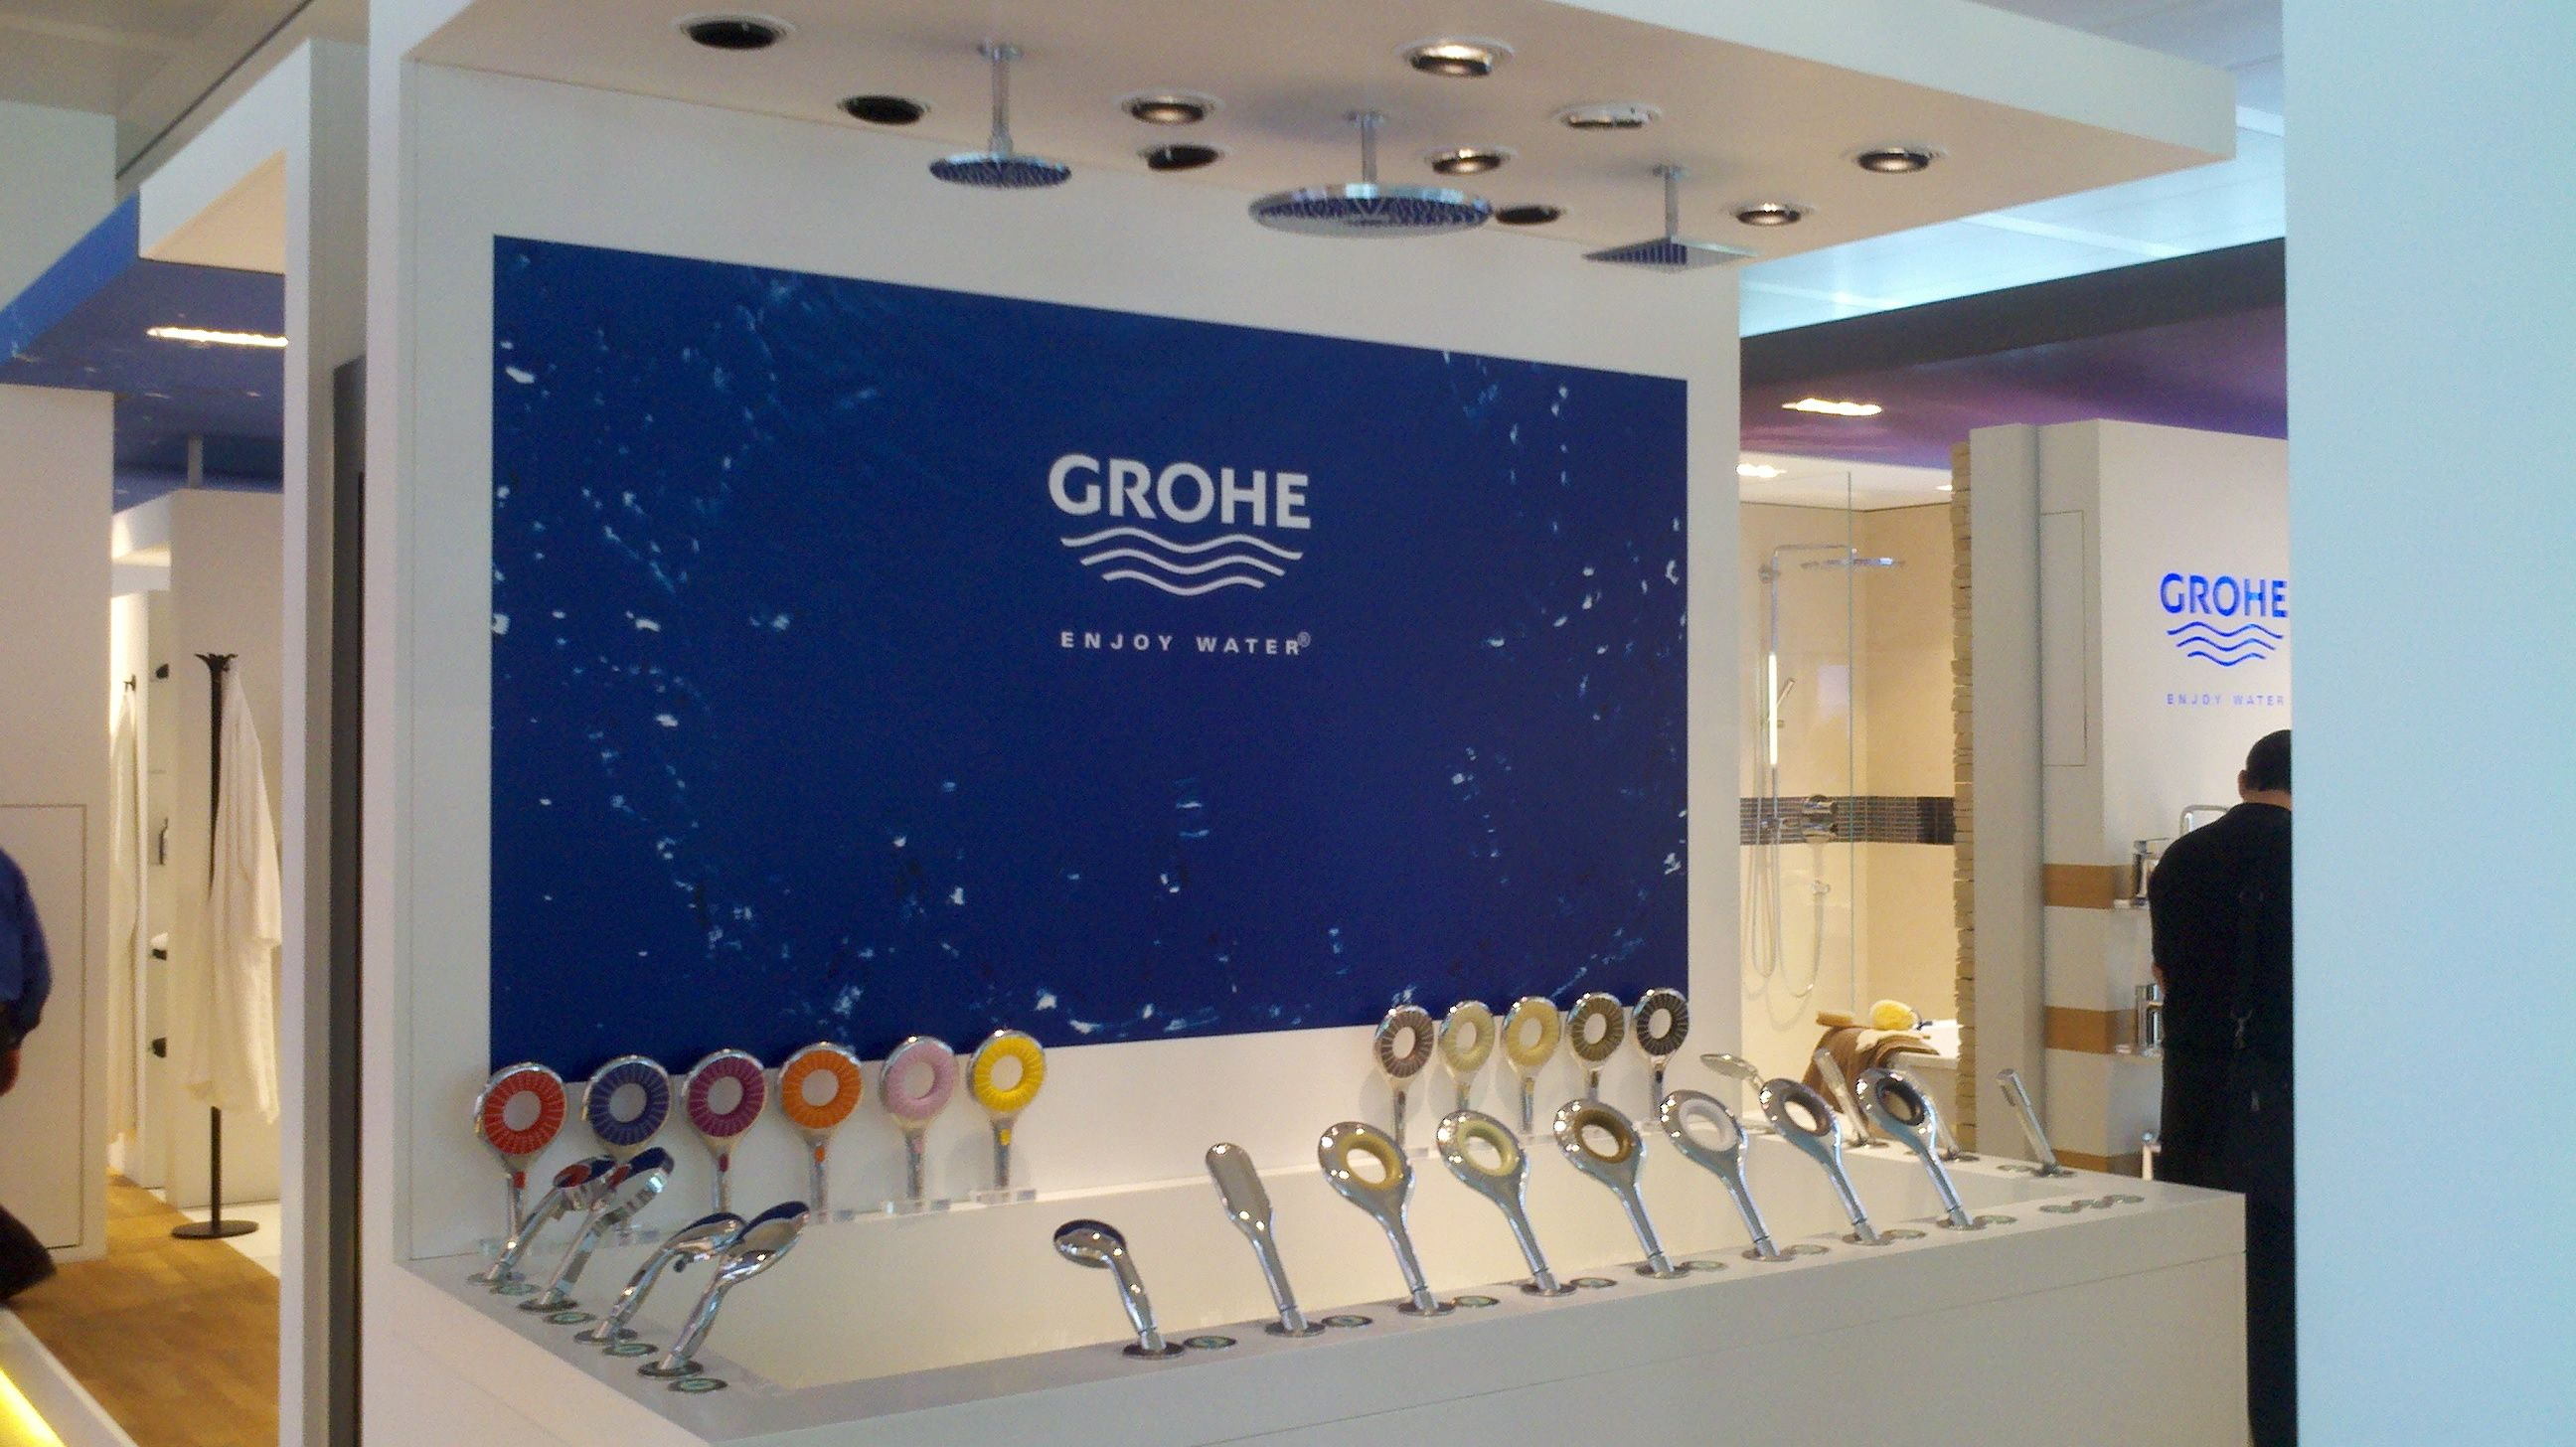 Grohe Hand Shower display with working shower heads | Grohe Faucets ...